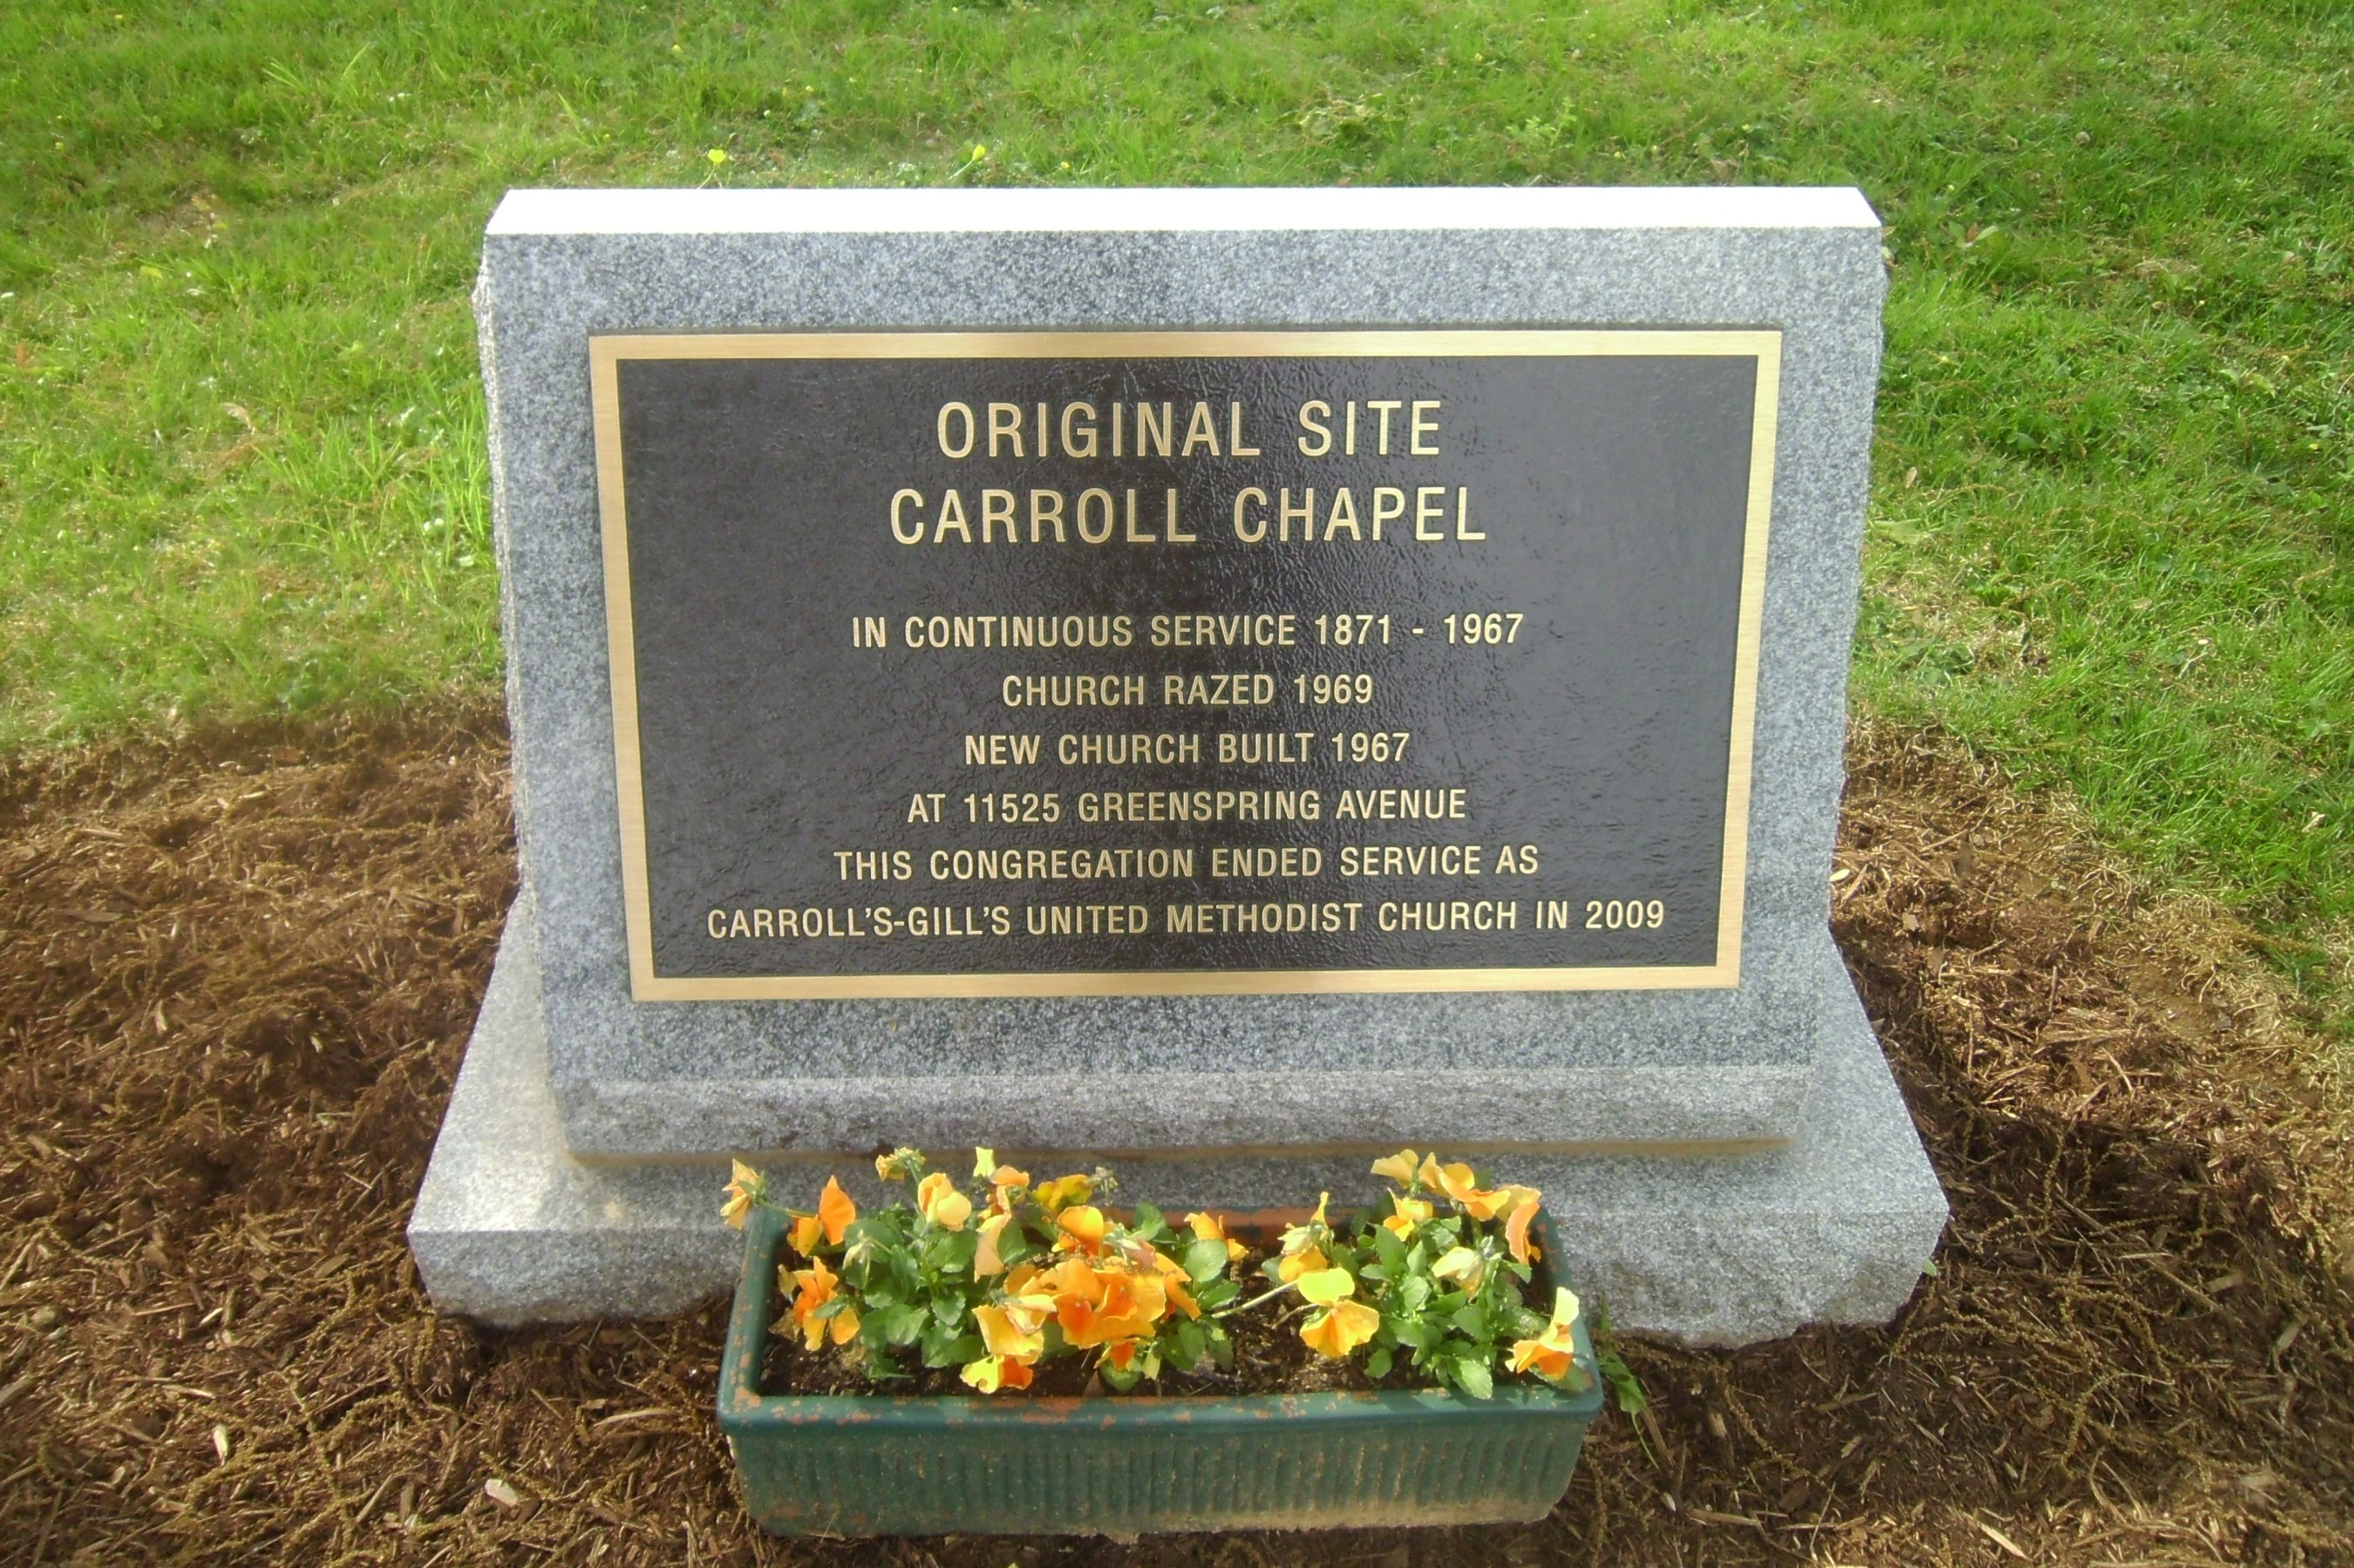 Carrolls-Gills United Methodist Church Cemetery